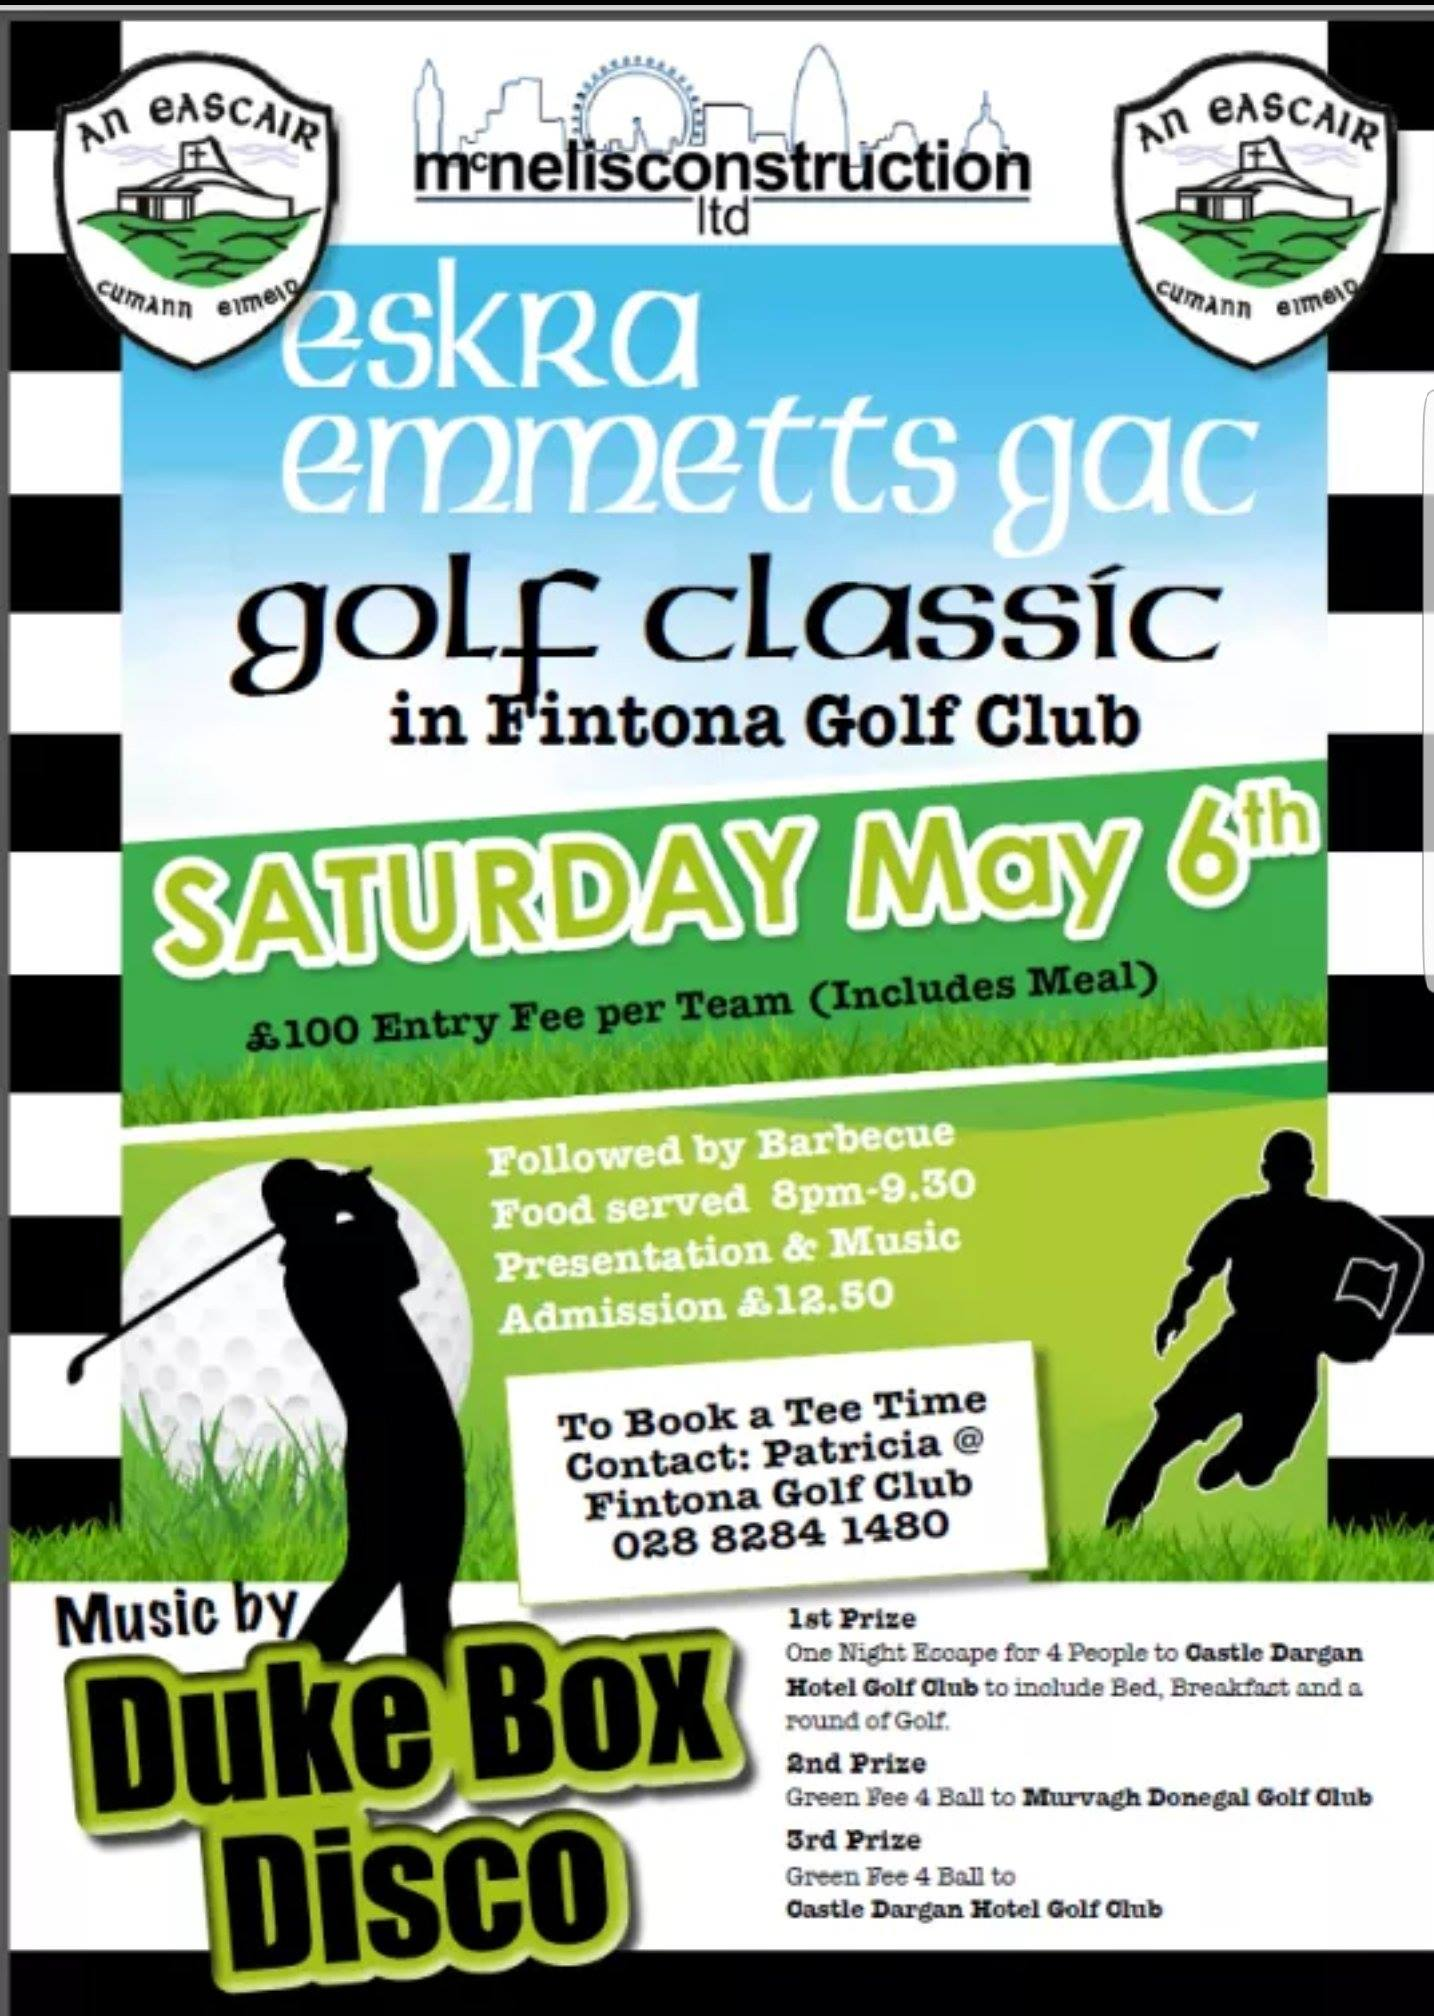 Eskra Emmetts Golf Classic Saturday 6th May